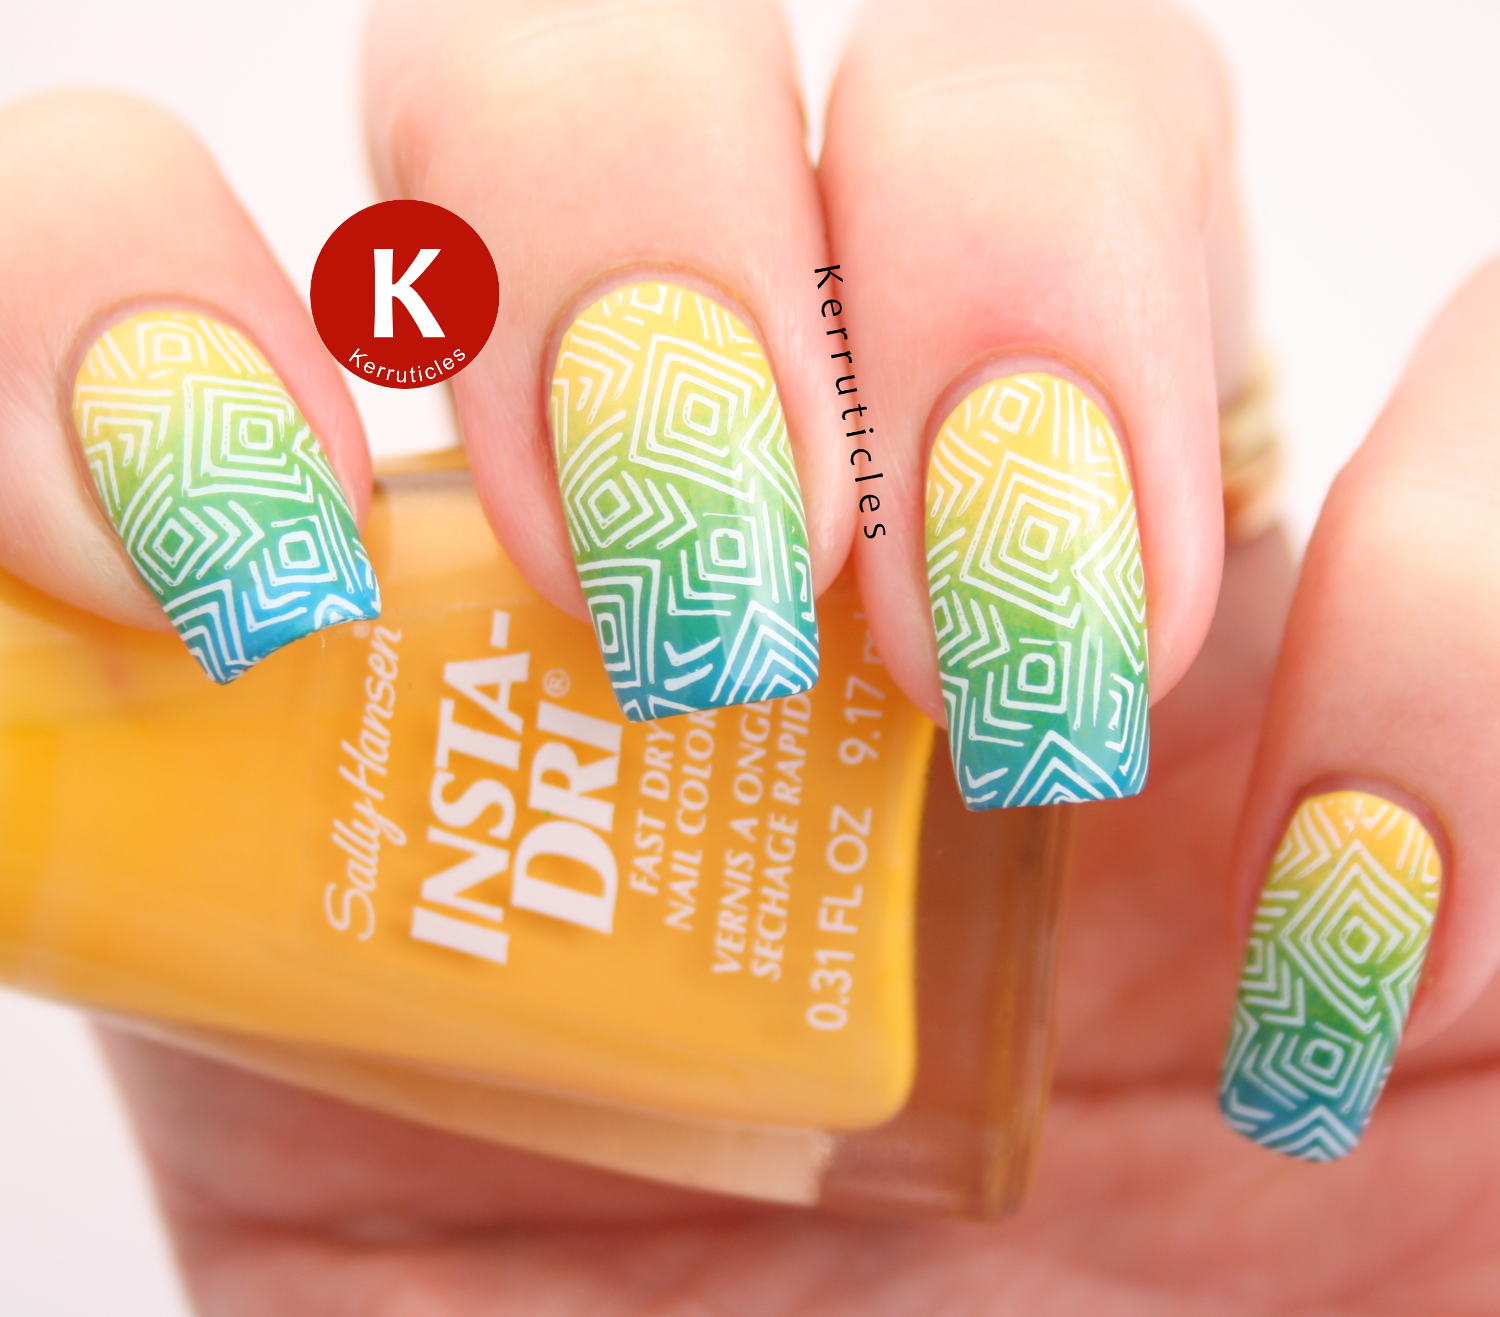 Yellow, green and blue gradient using Sally Hansen Butter-fly Stroke, Lickety-Split Lime and Brisk Blue, stamped with a geometric pattern from MoYou Nails Pro Board VII